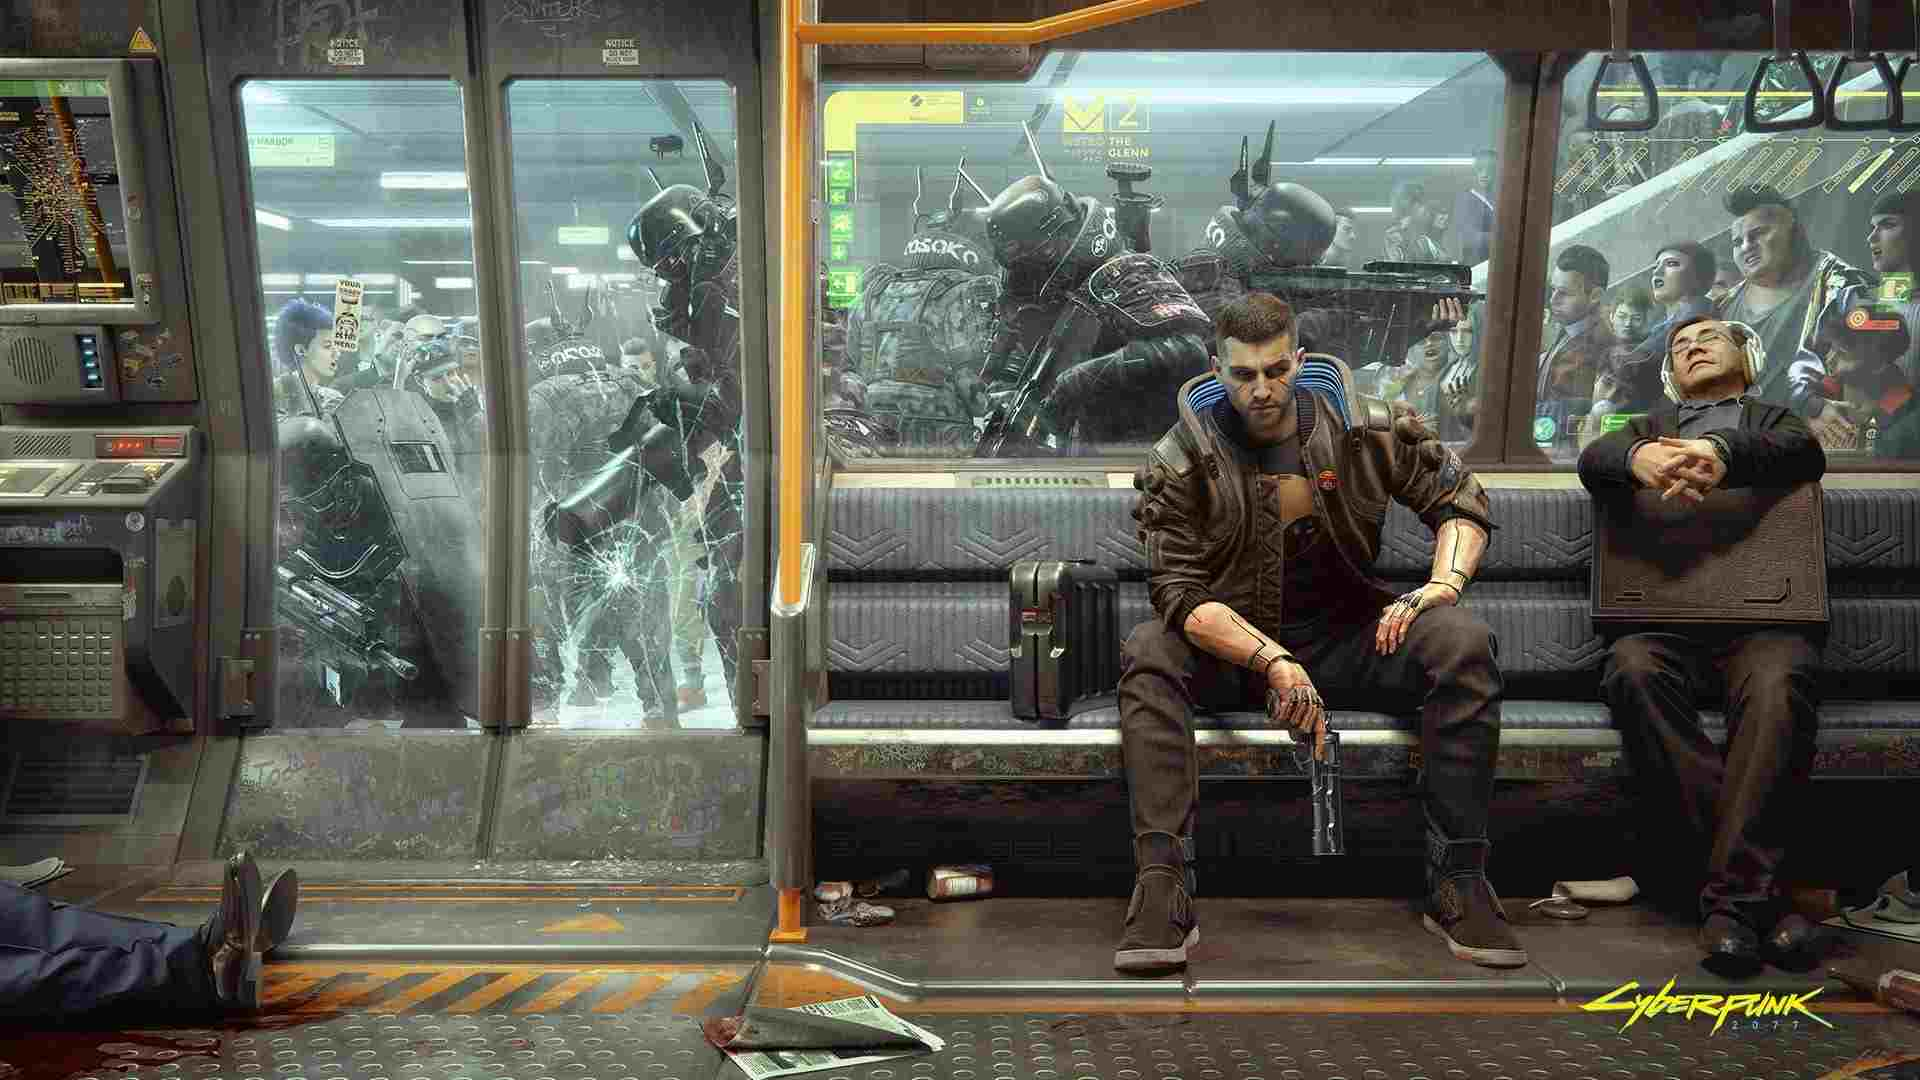 A man sitting on a train seat while private soldiers attempt to breach the doors. Another man is sleeping beside him.